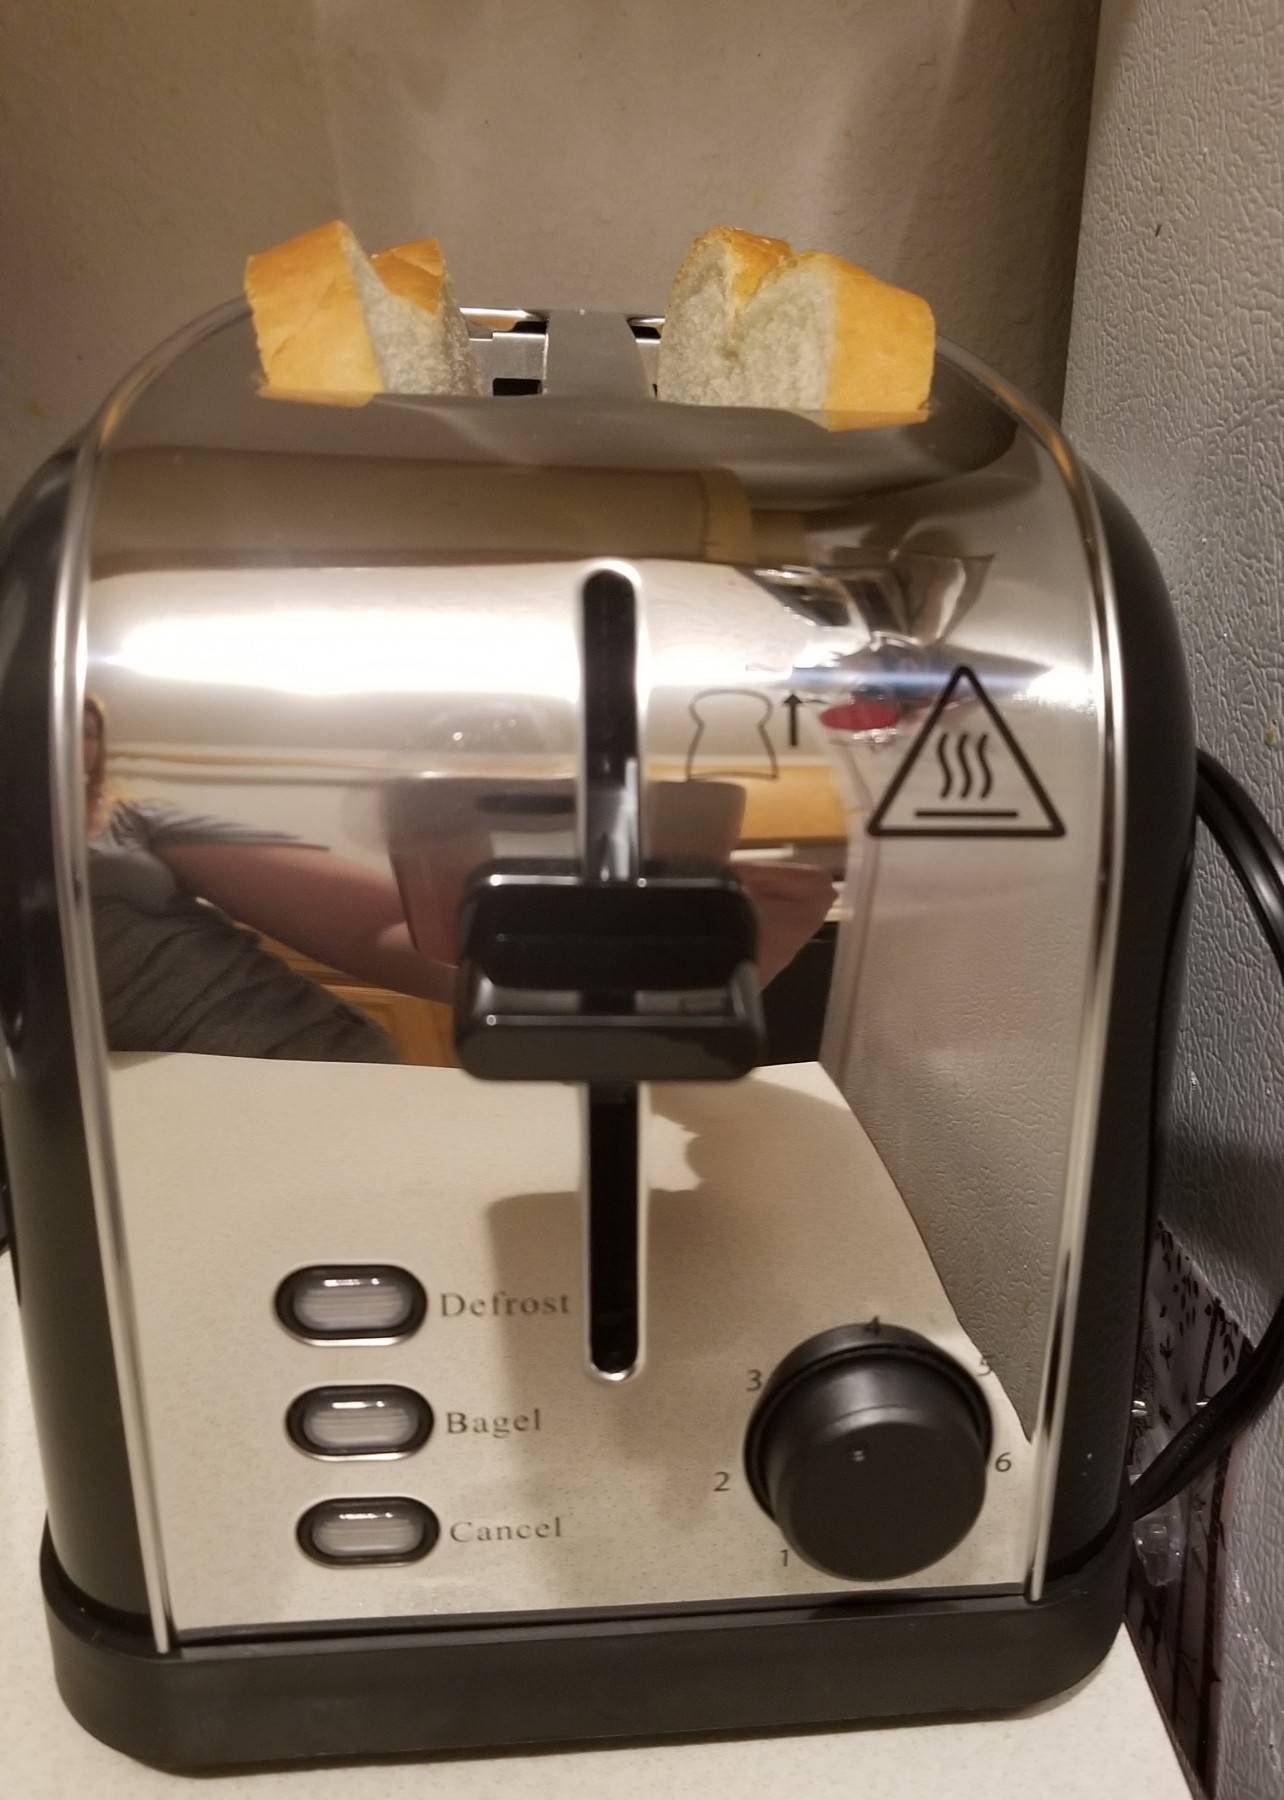 Very cool and neat toaster!